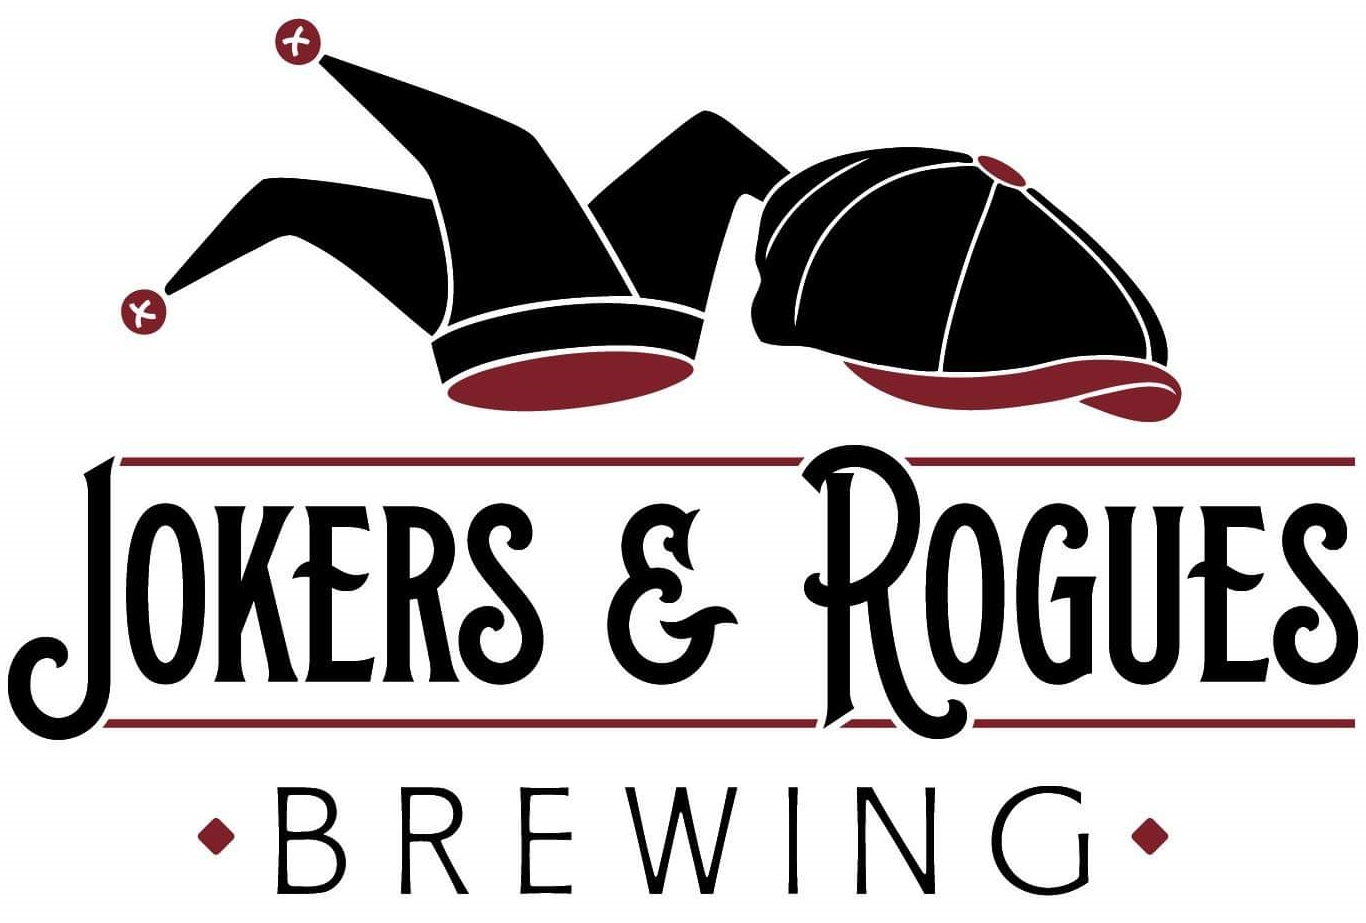 Jokers & Rogues Brewing